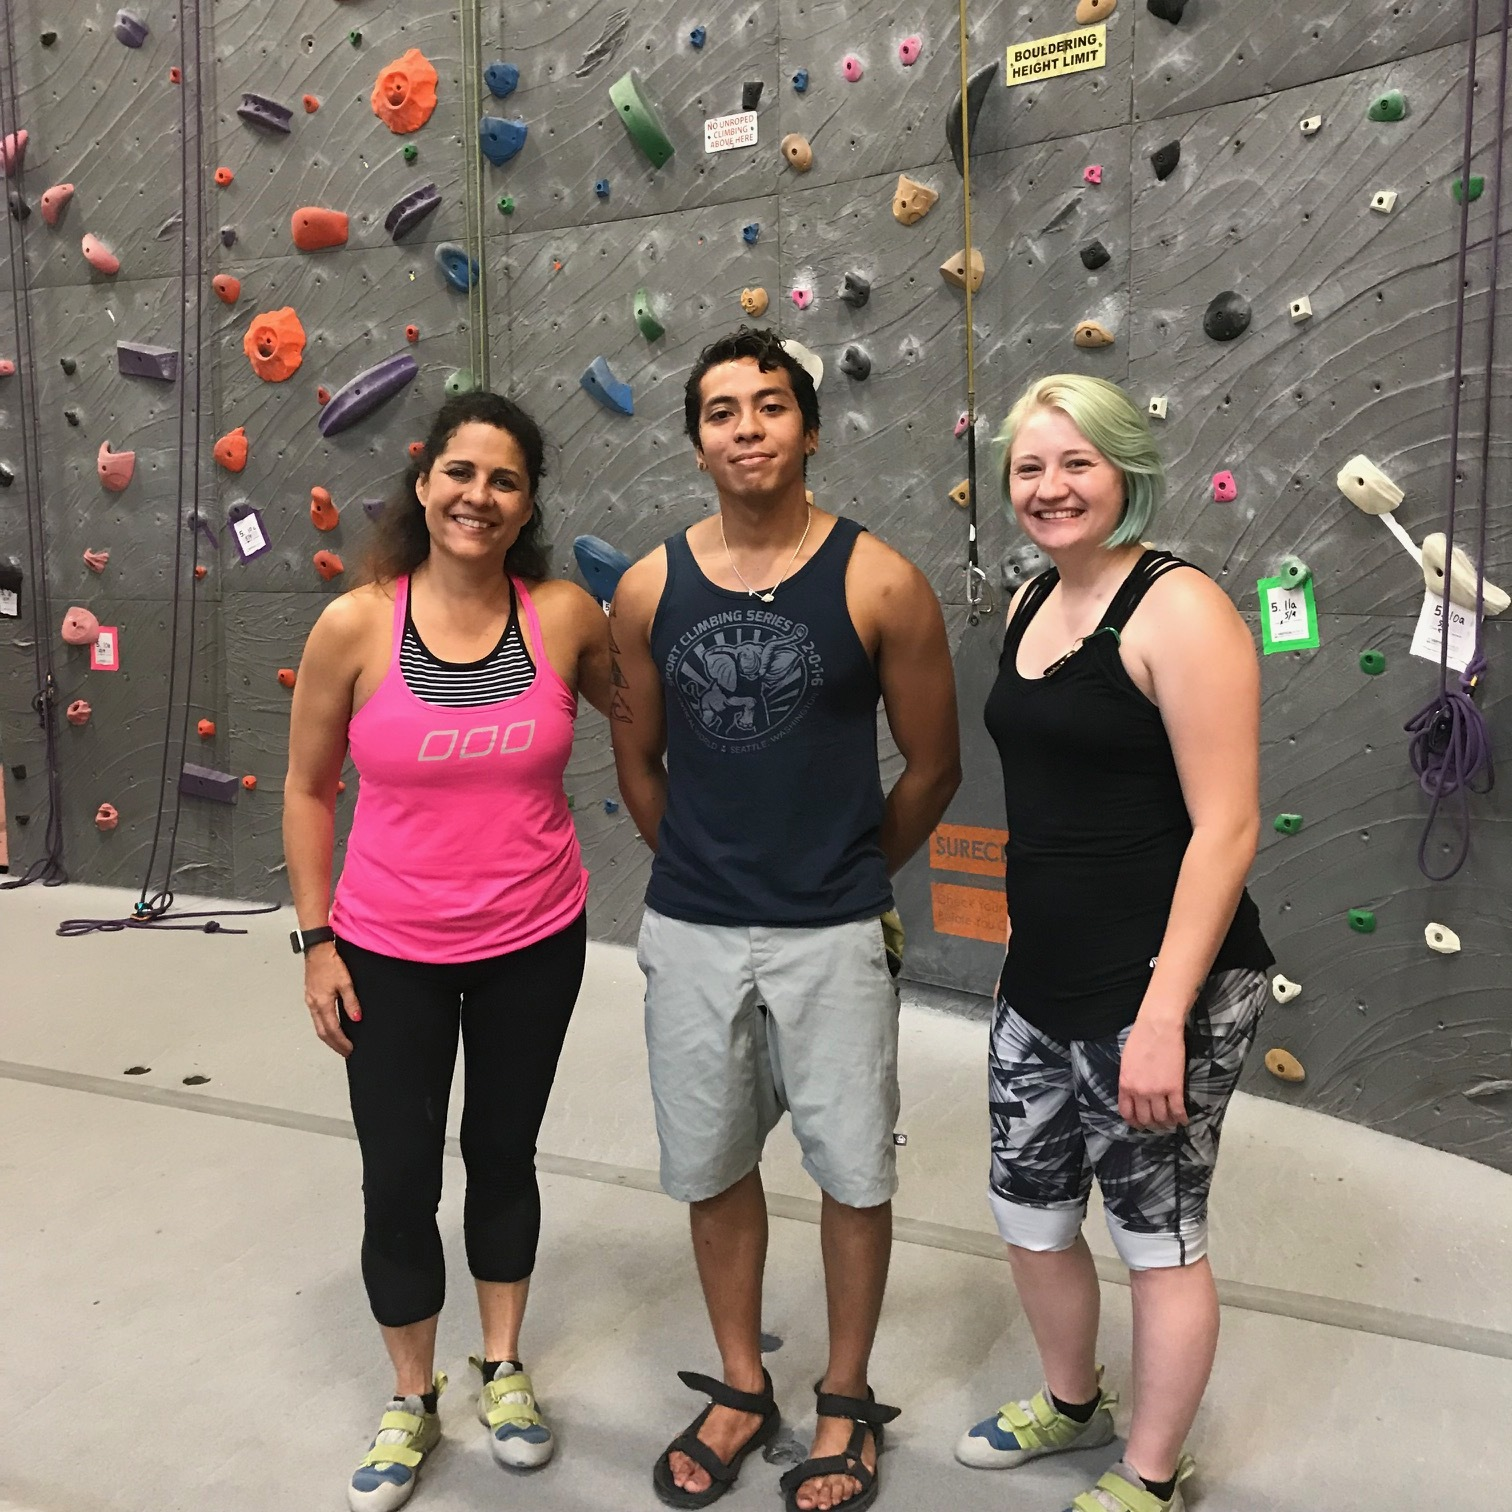 Climbing at Vertical World, Redmond